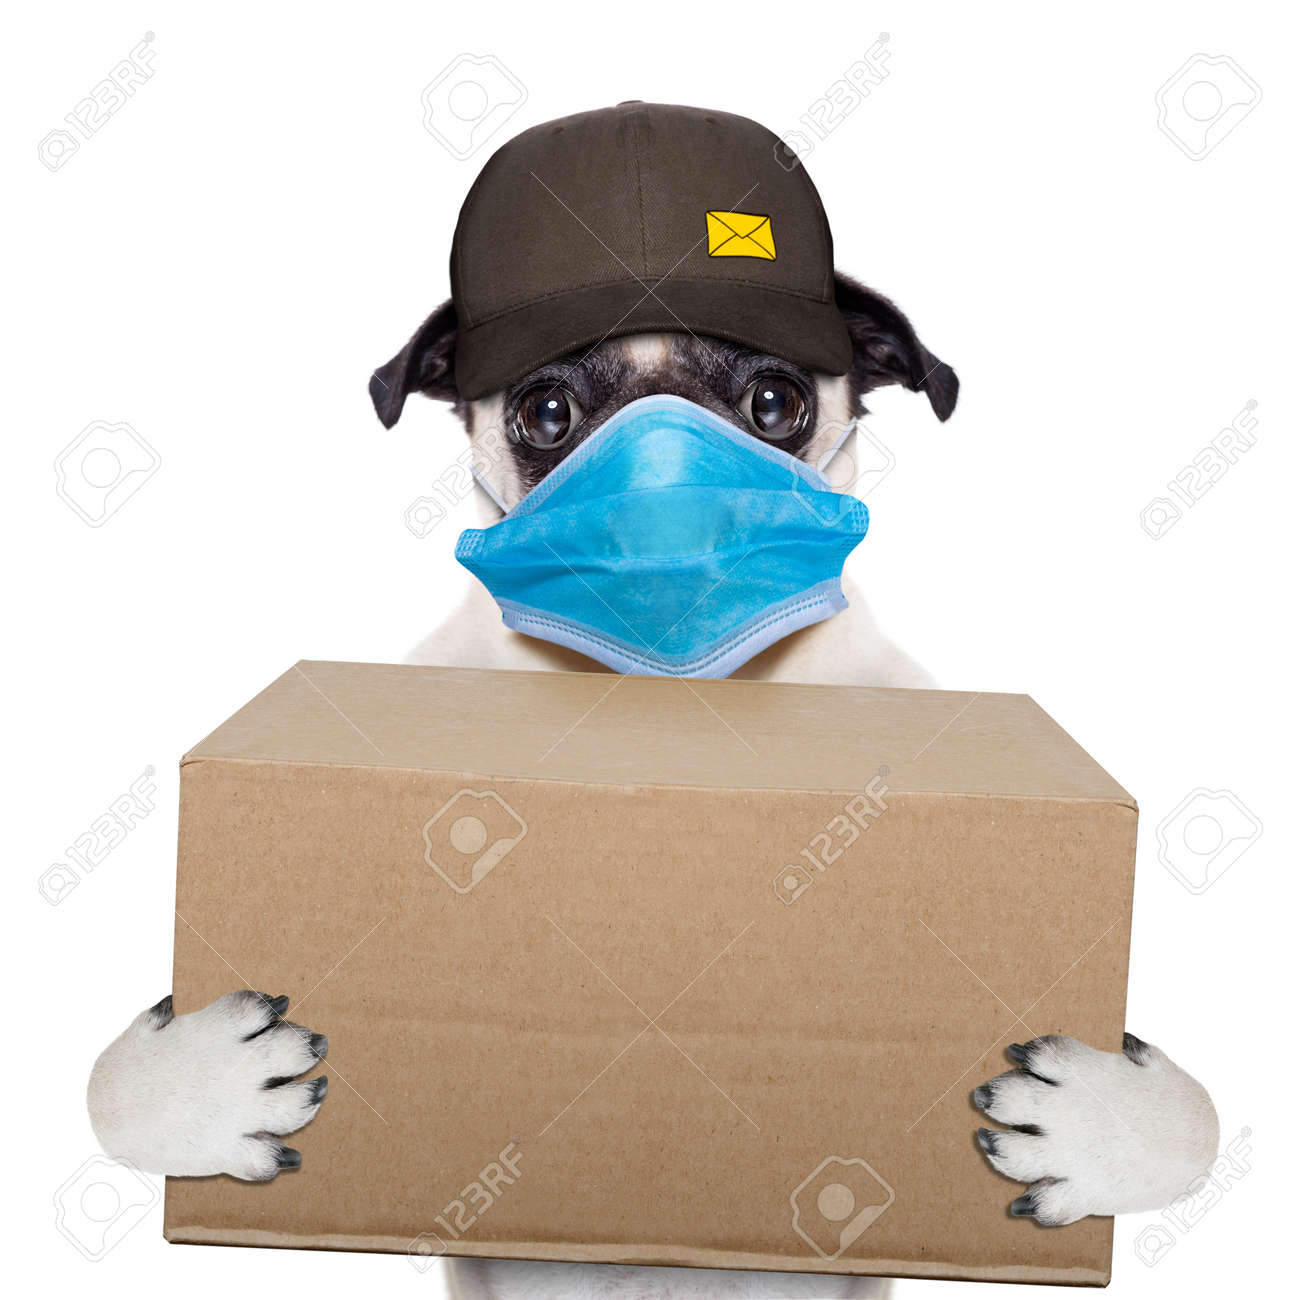 postman pug dog delivering a big brown package, in covid 19, cornavirus, virus time - 157444839